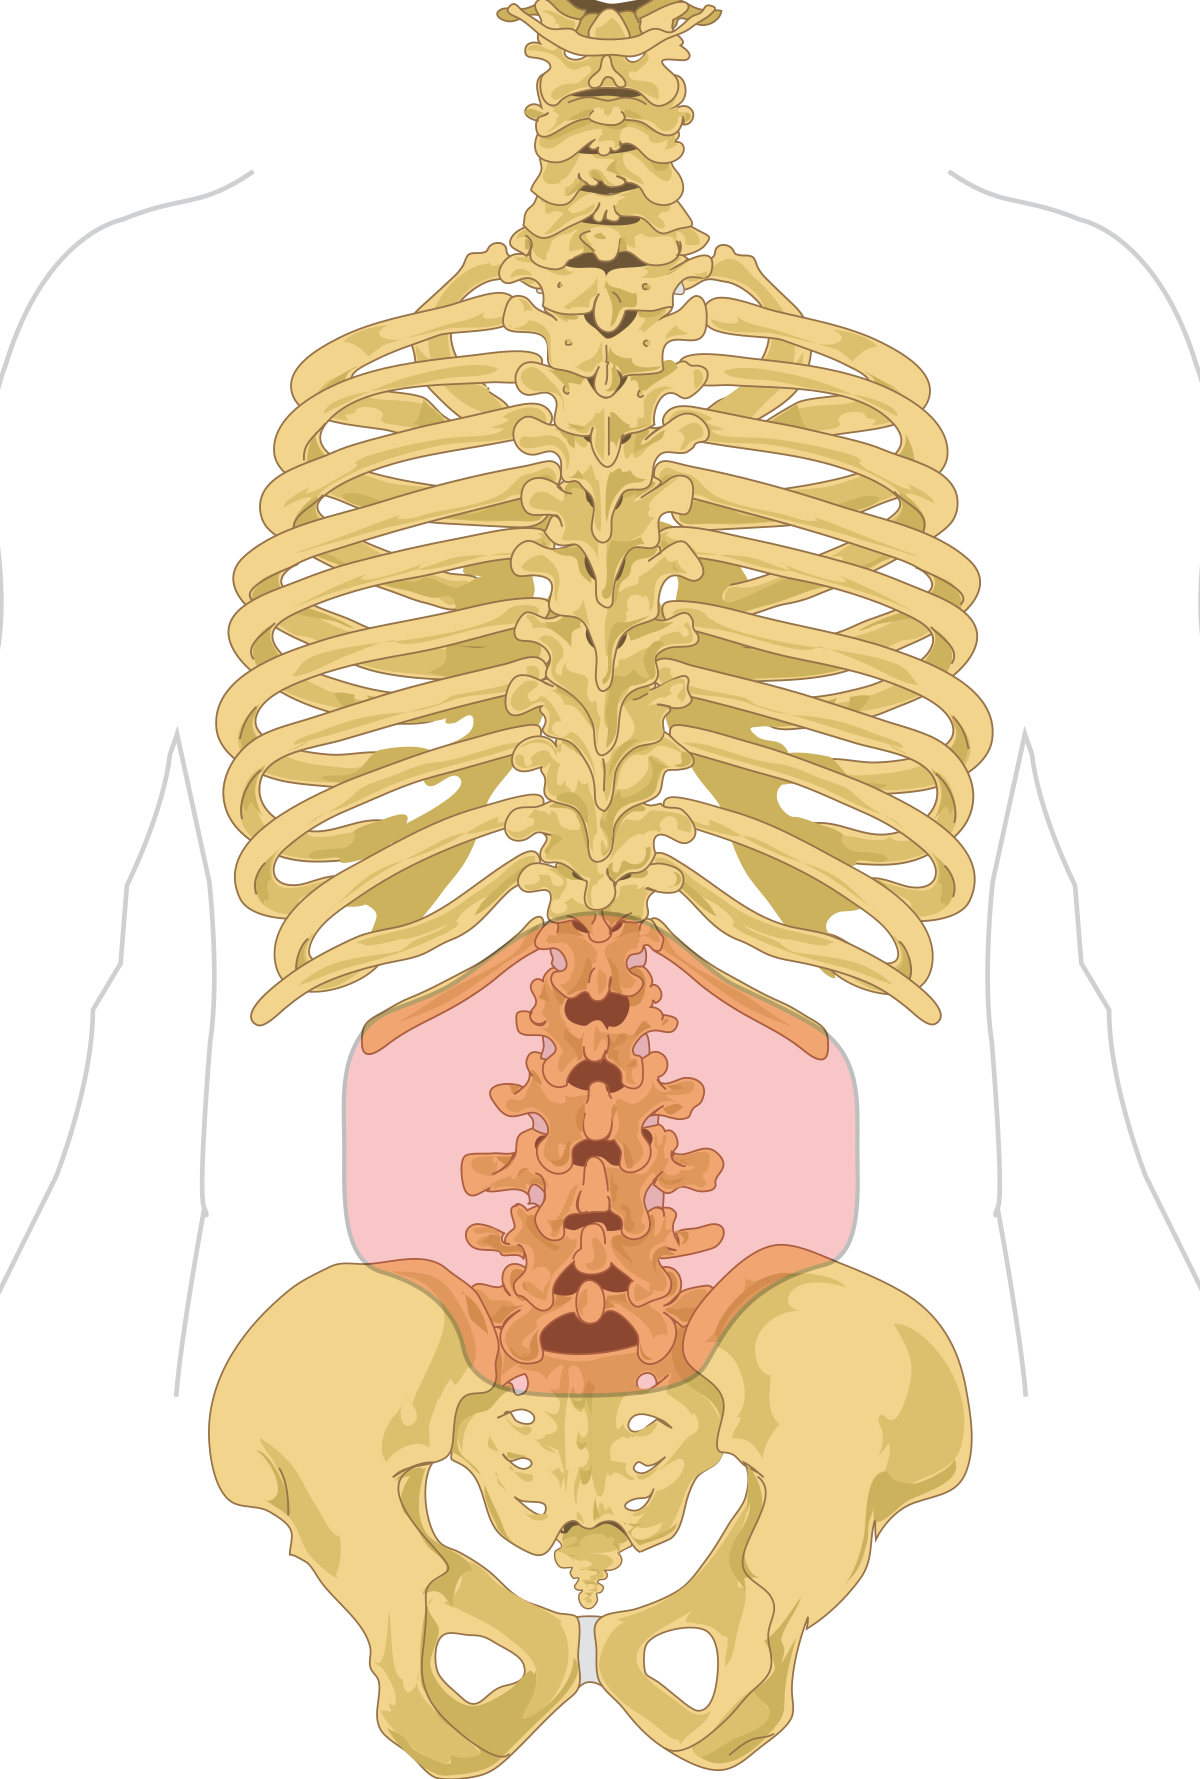 metastatic cancer and back pain